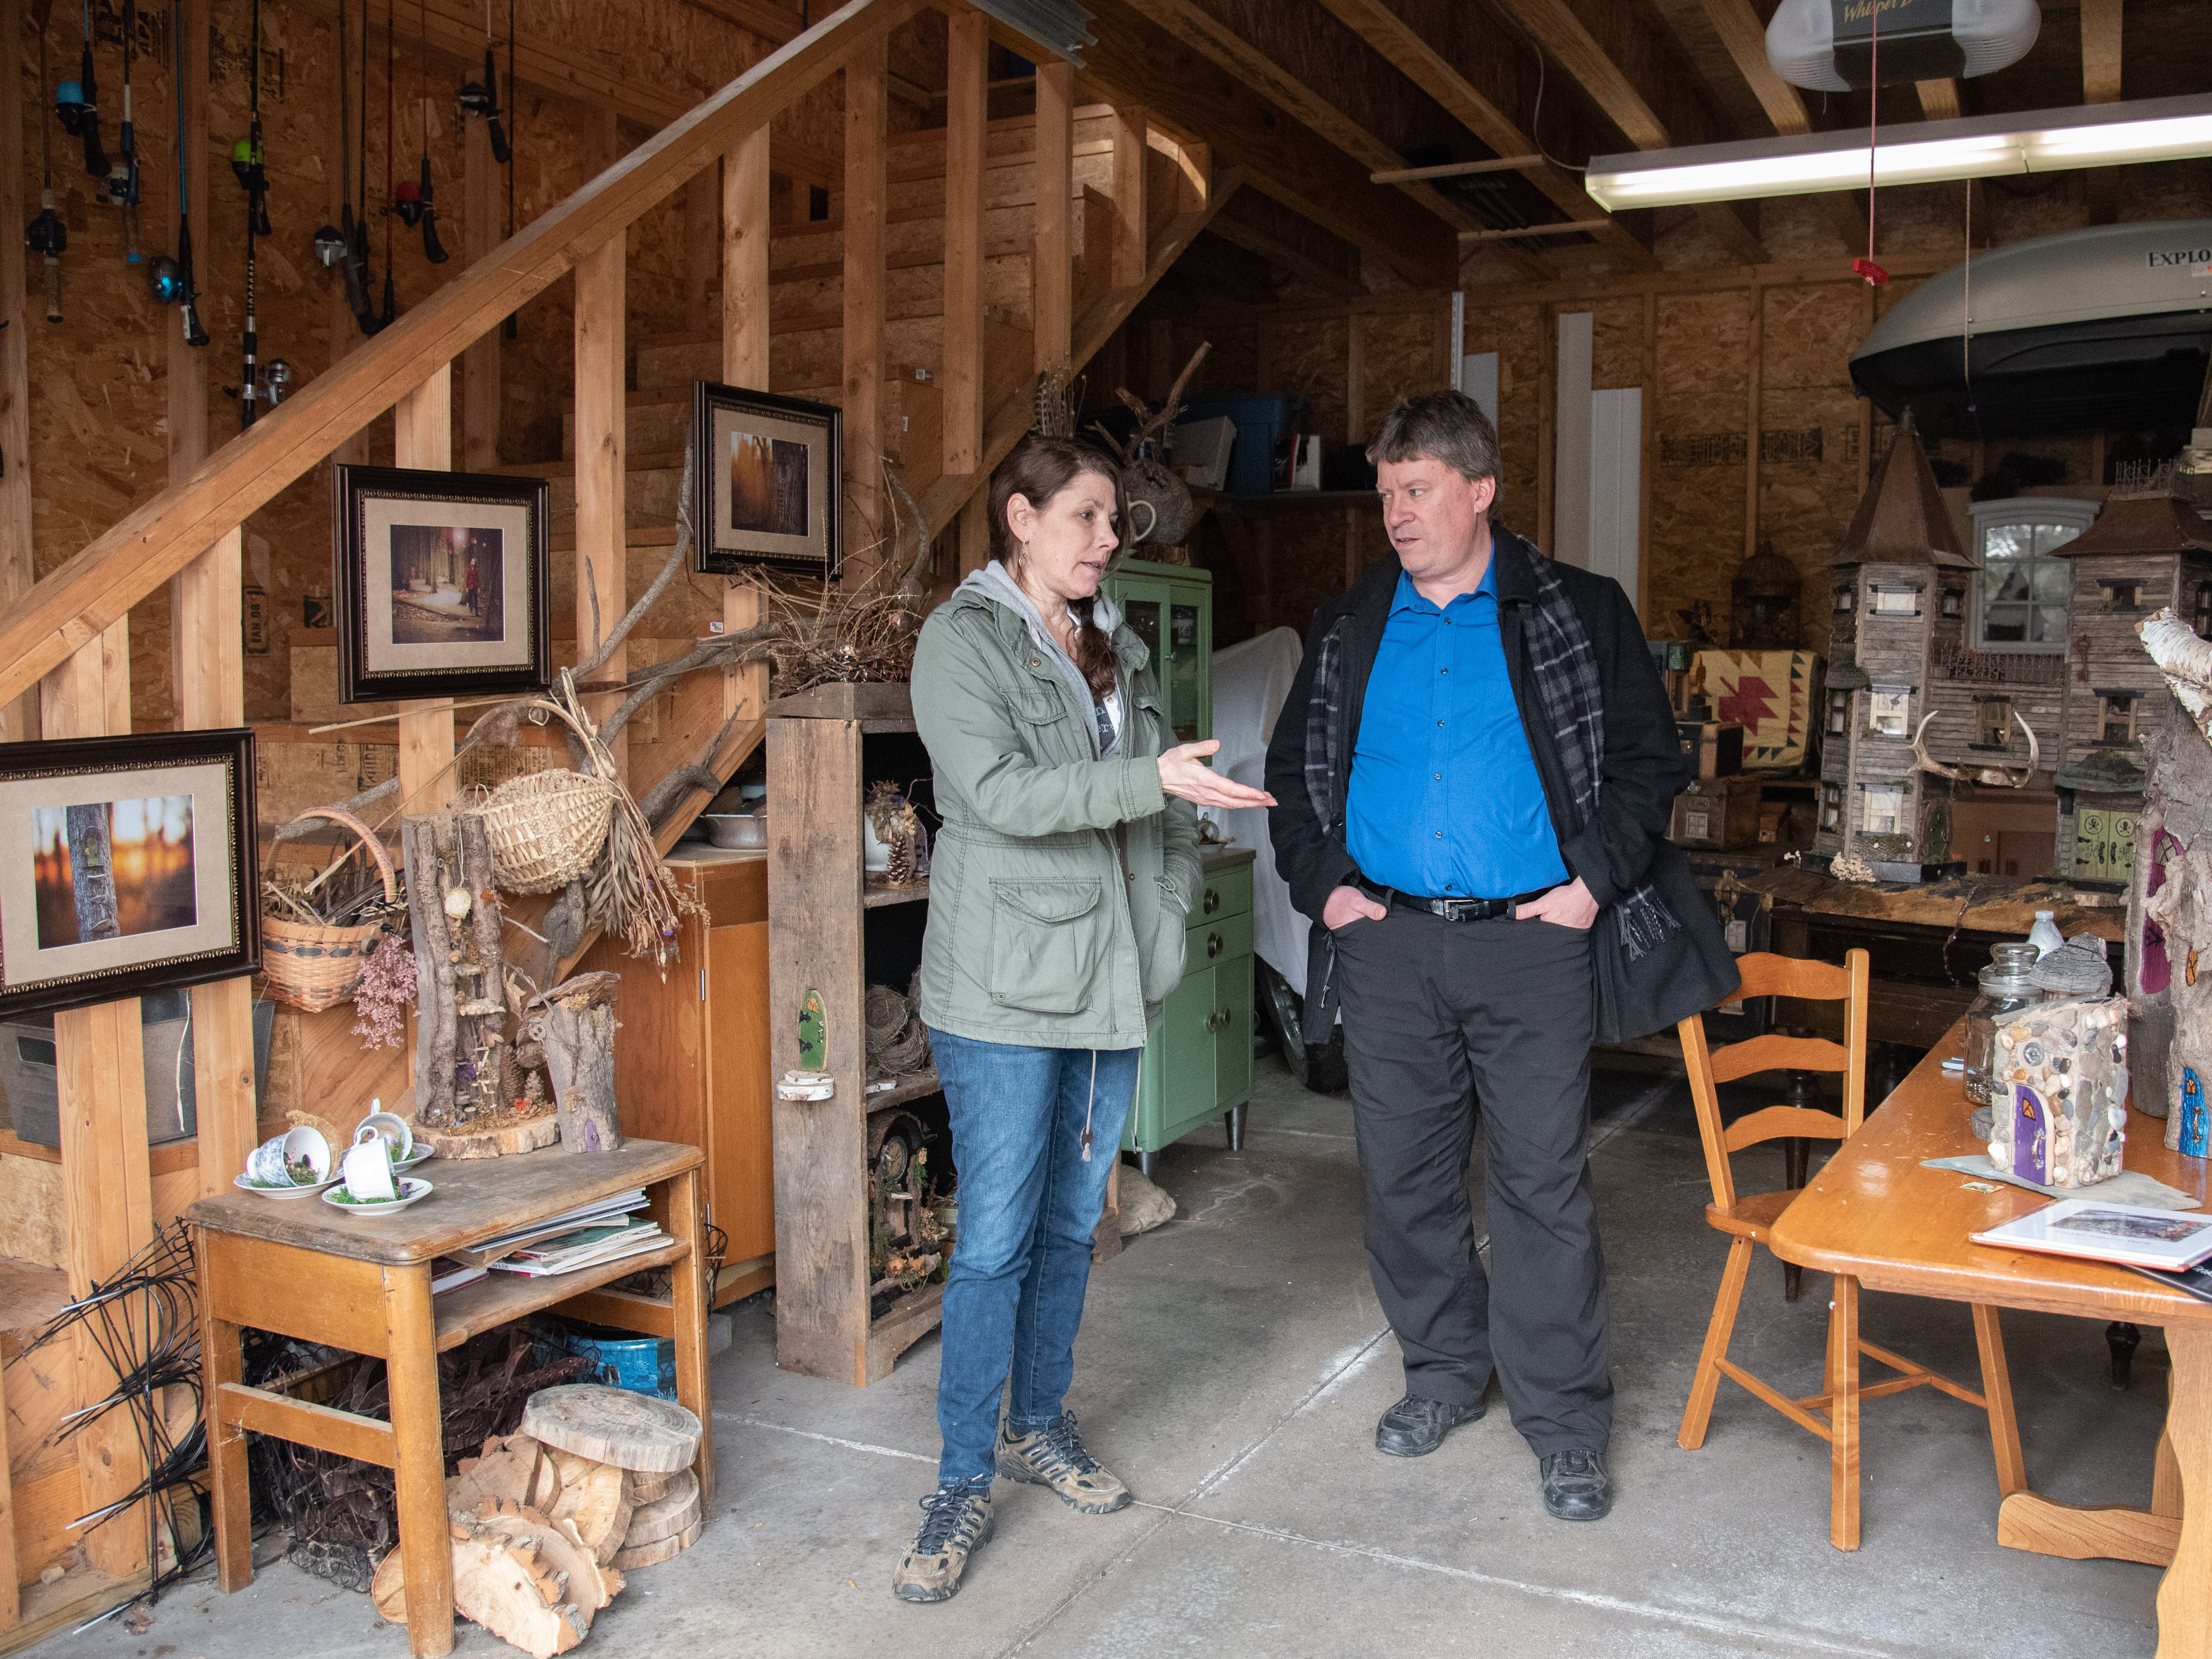 Betsy Marshall, the creator of Tinker Park's miniature fairy houses, talks with Henrietta Town Supervisor Steve Schultz in the workshop at her home in Rush on March 24, 2019.